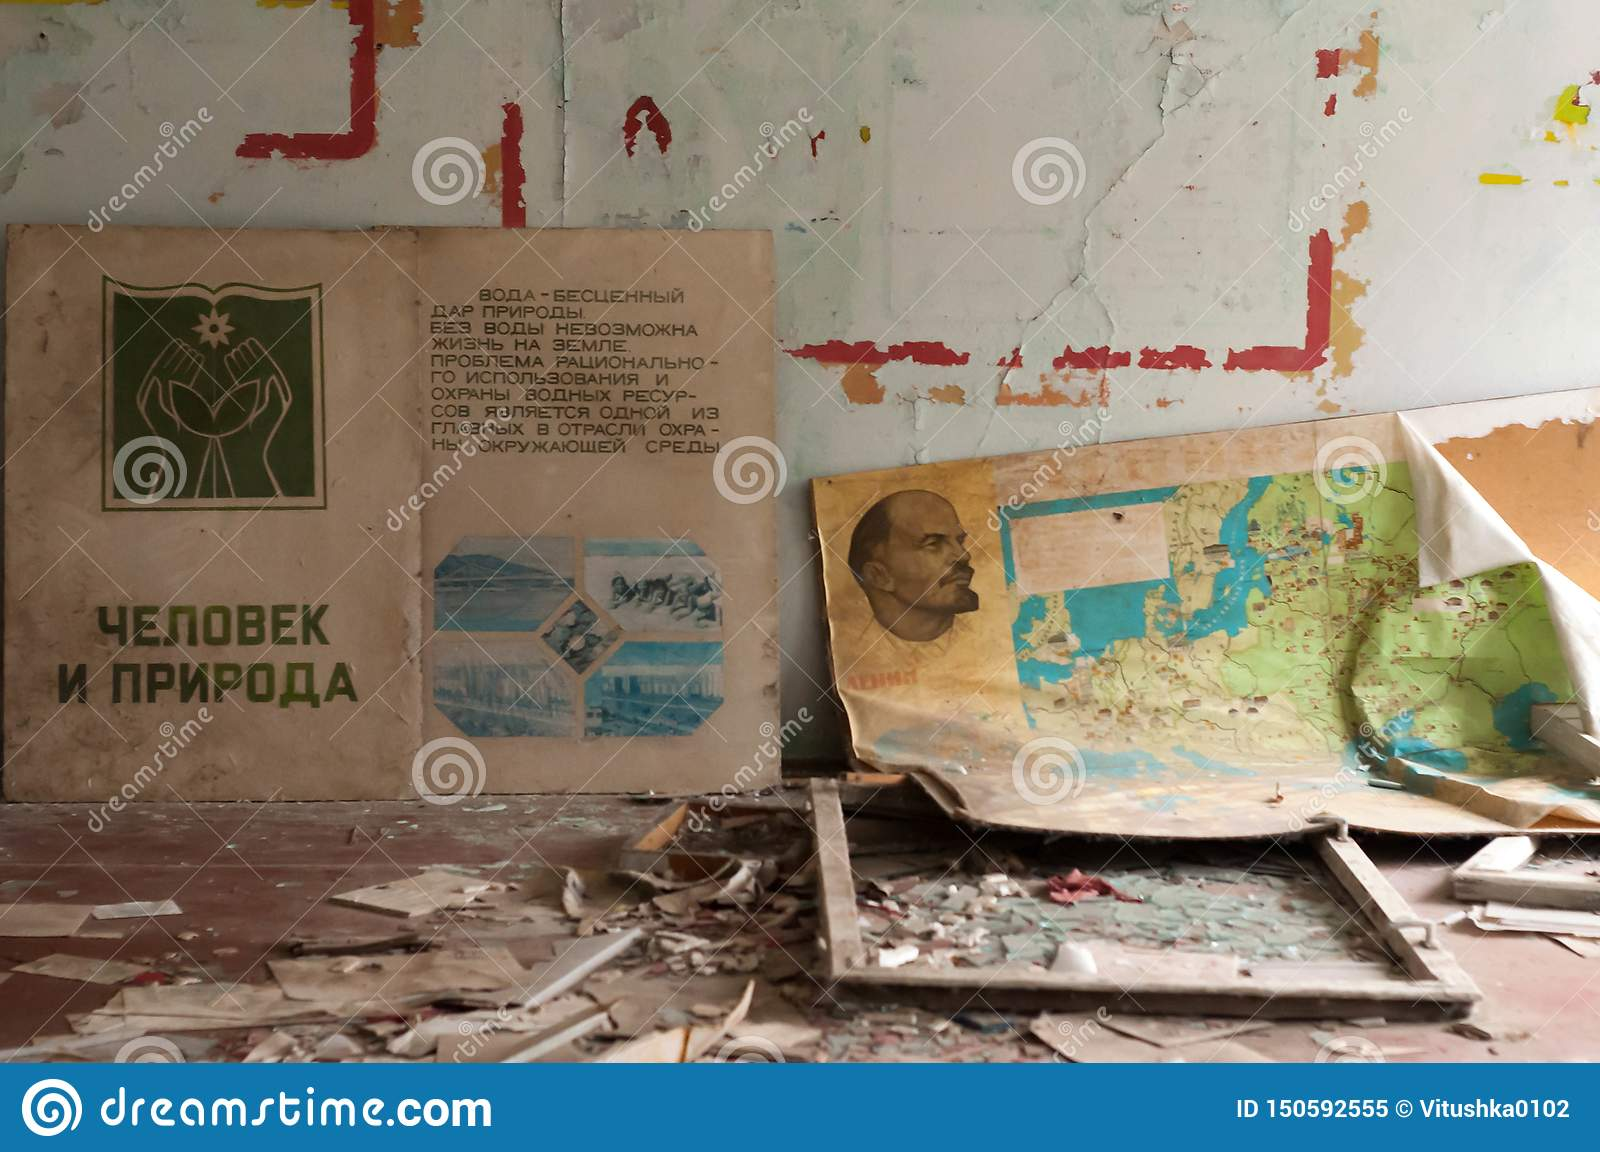 propaganda posters with Lenin and other Bolshevik and communist leaders on floor near walls in abandoned school Pripyt